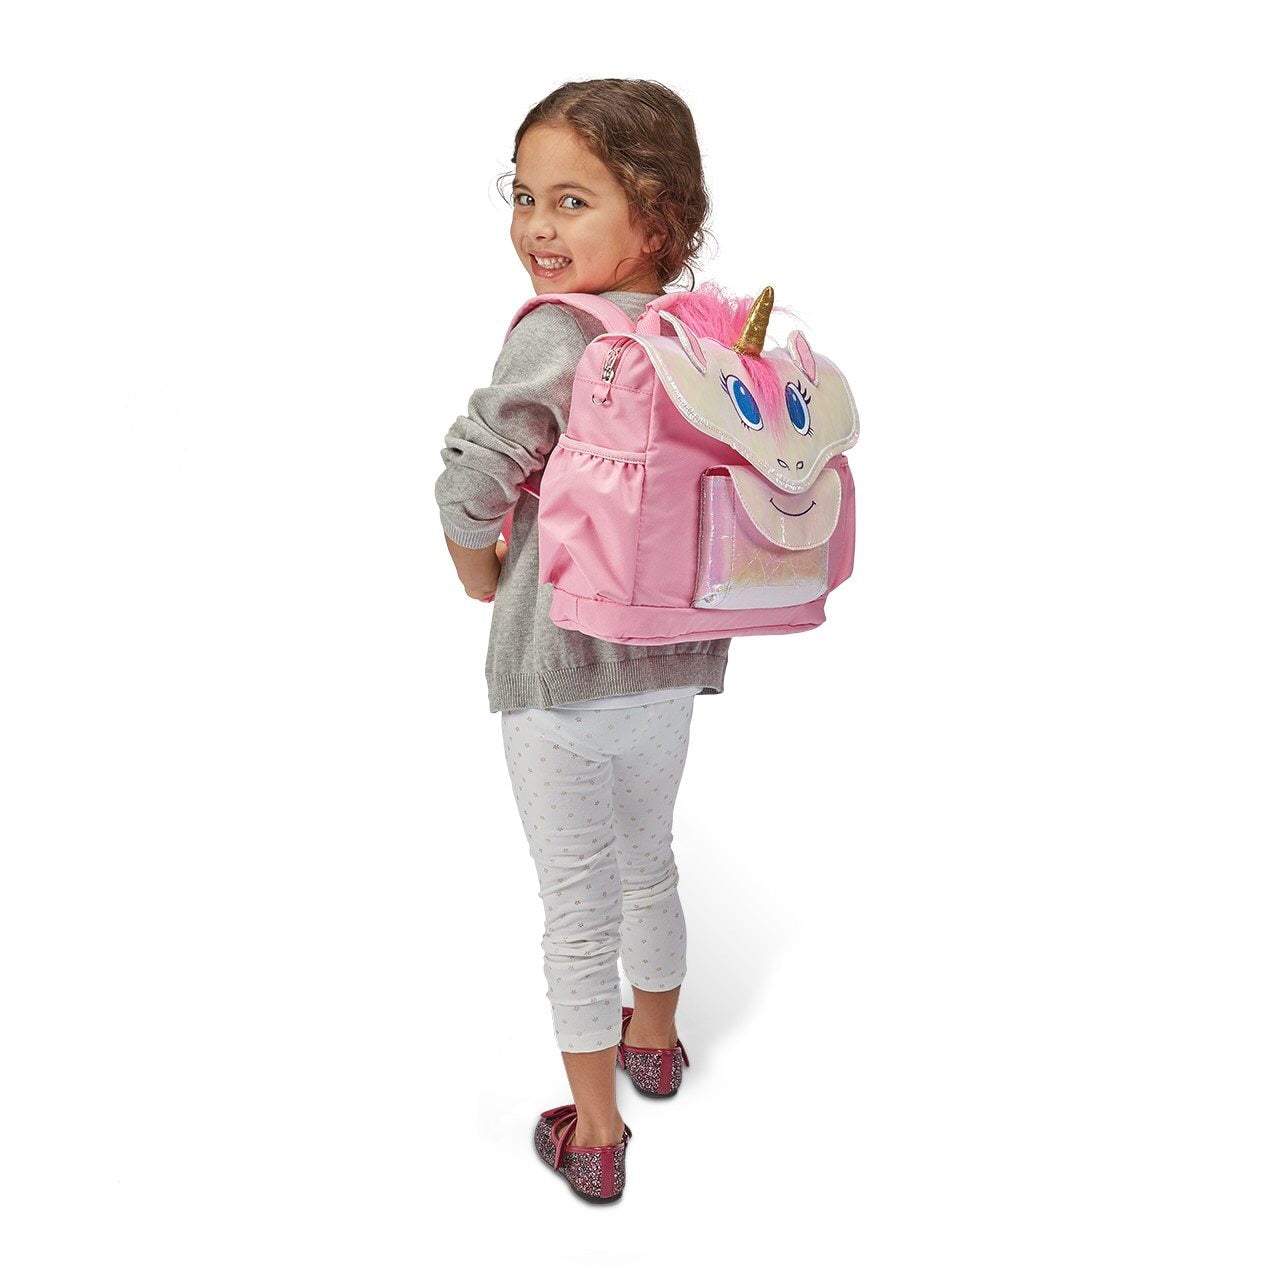 Medium Unicorn Backpack 5-7 years - Le Bébé Chic Boutique